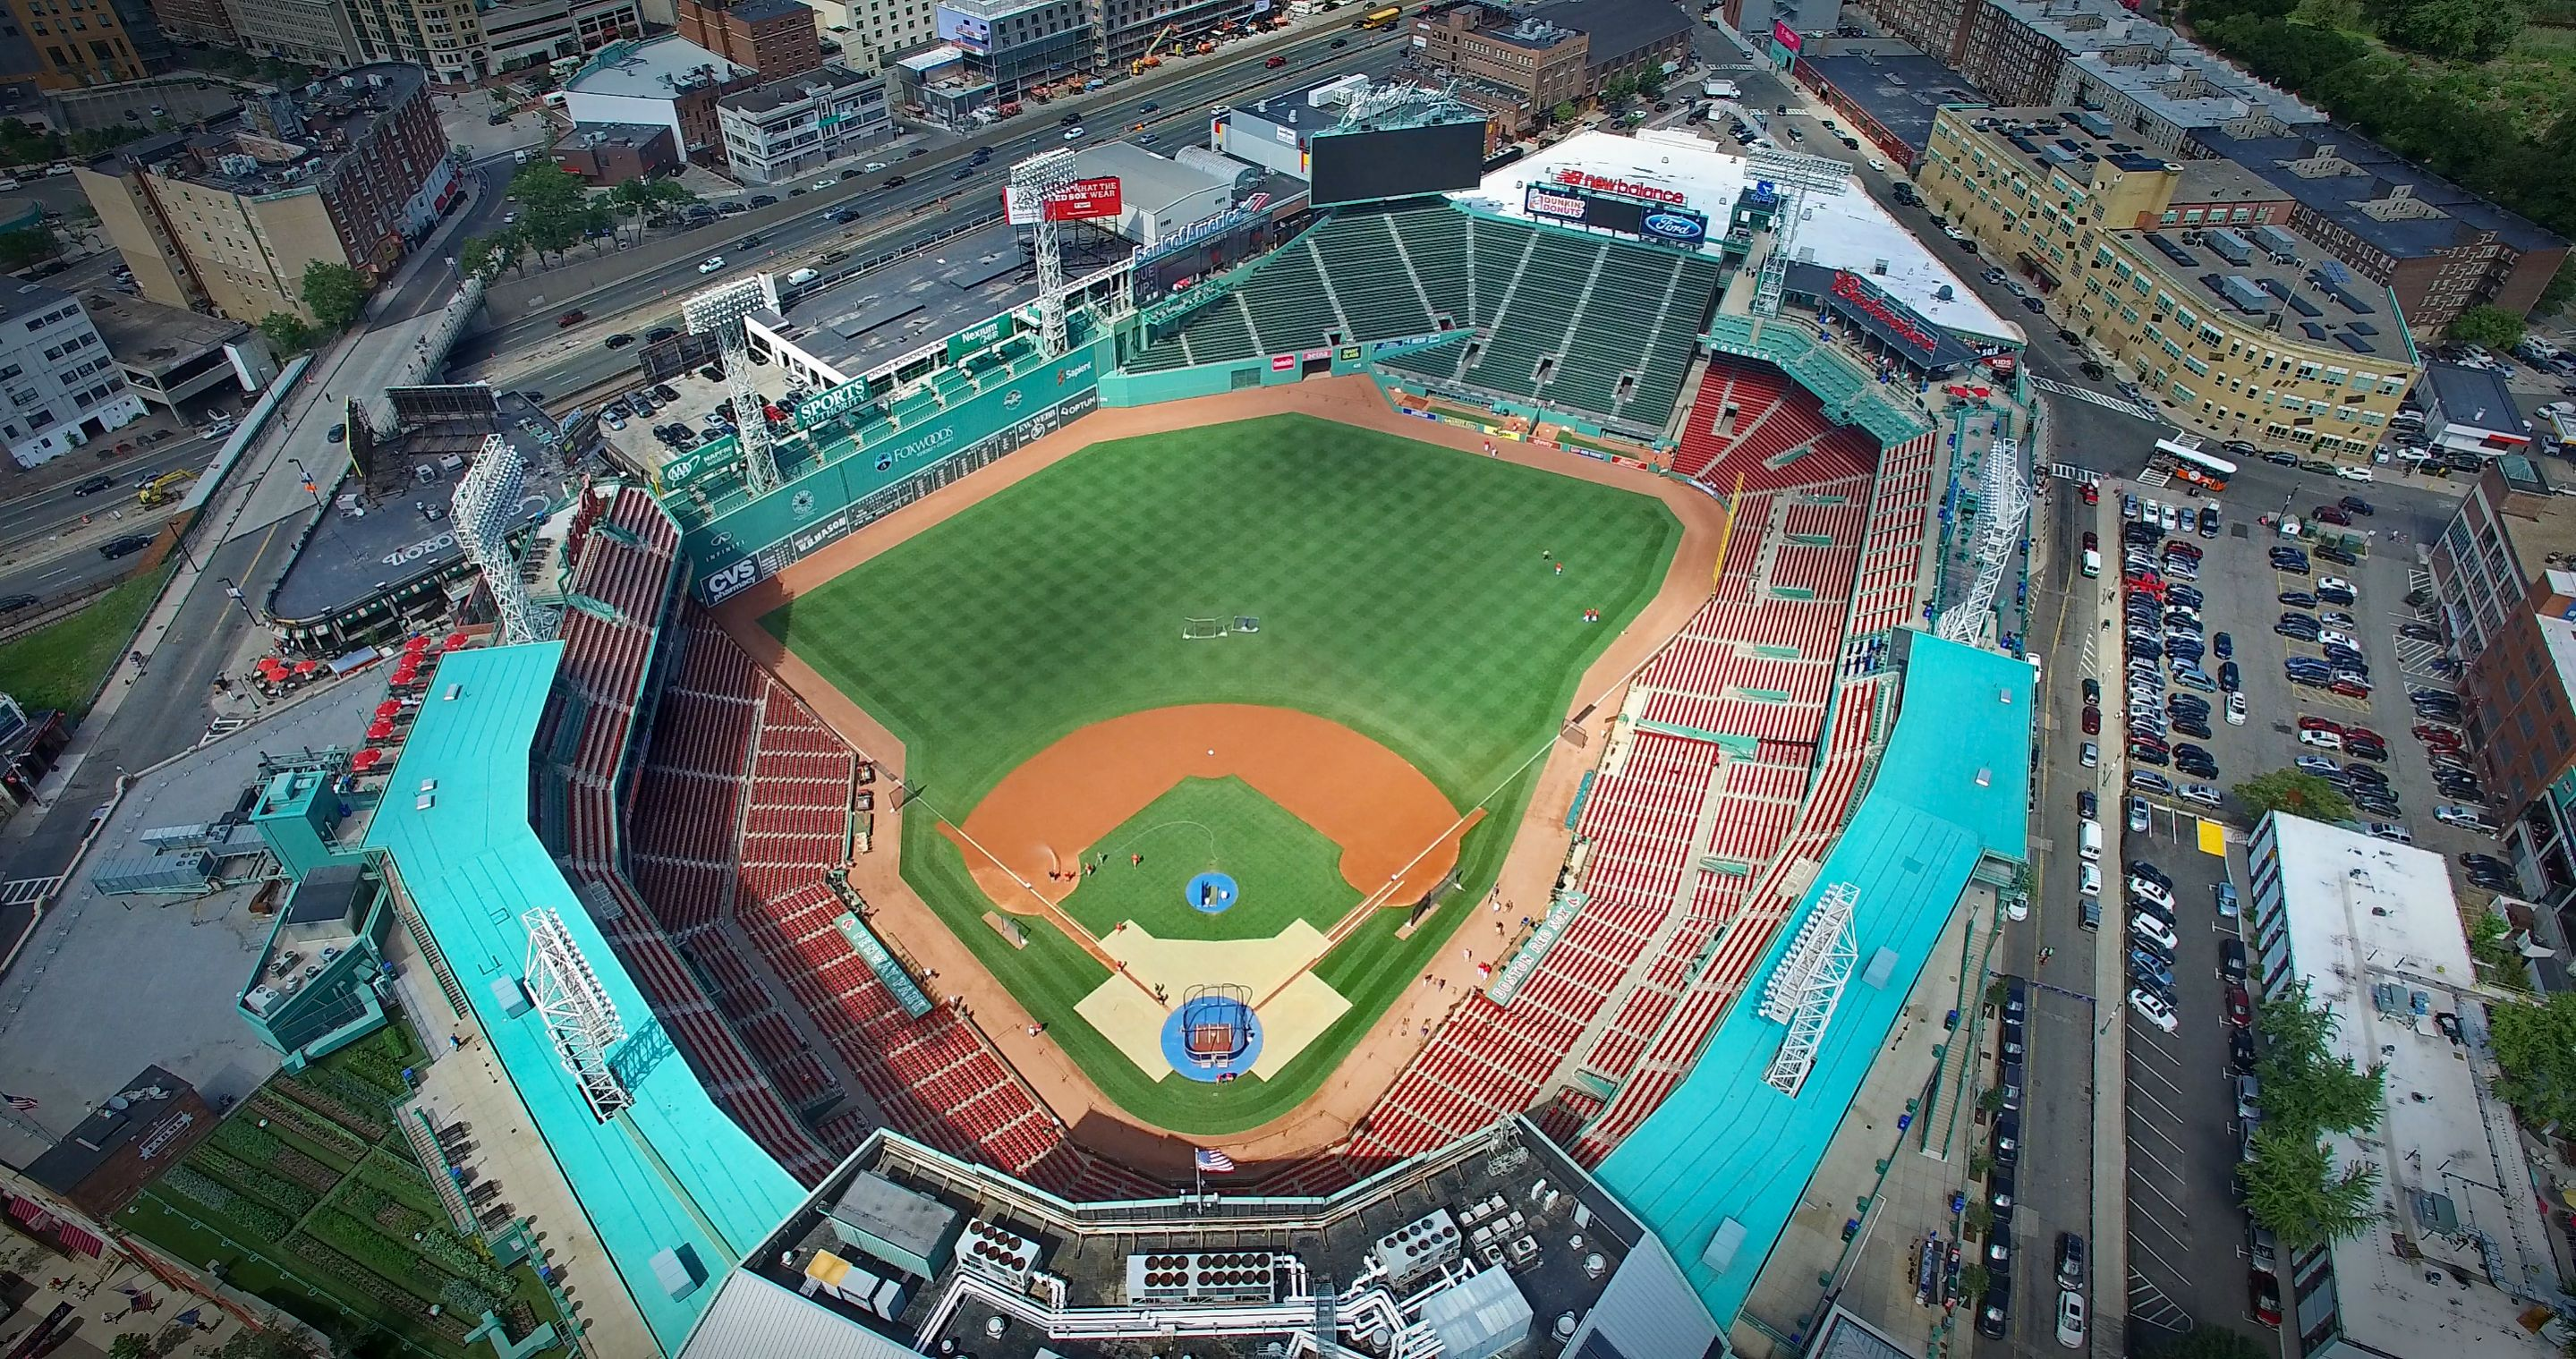 Aerial photo of Fenway Park. Fenway Park is a baseball park located in Boston, Massachusetts, at 4 Yawkey Way near Kenmore Square. Since 1912, it has been the home for the Boston Red Sox, the city's Major League Baseball (MLB) franchise. It is the oldest ballpark in MLB